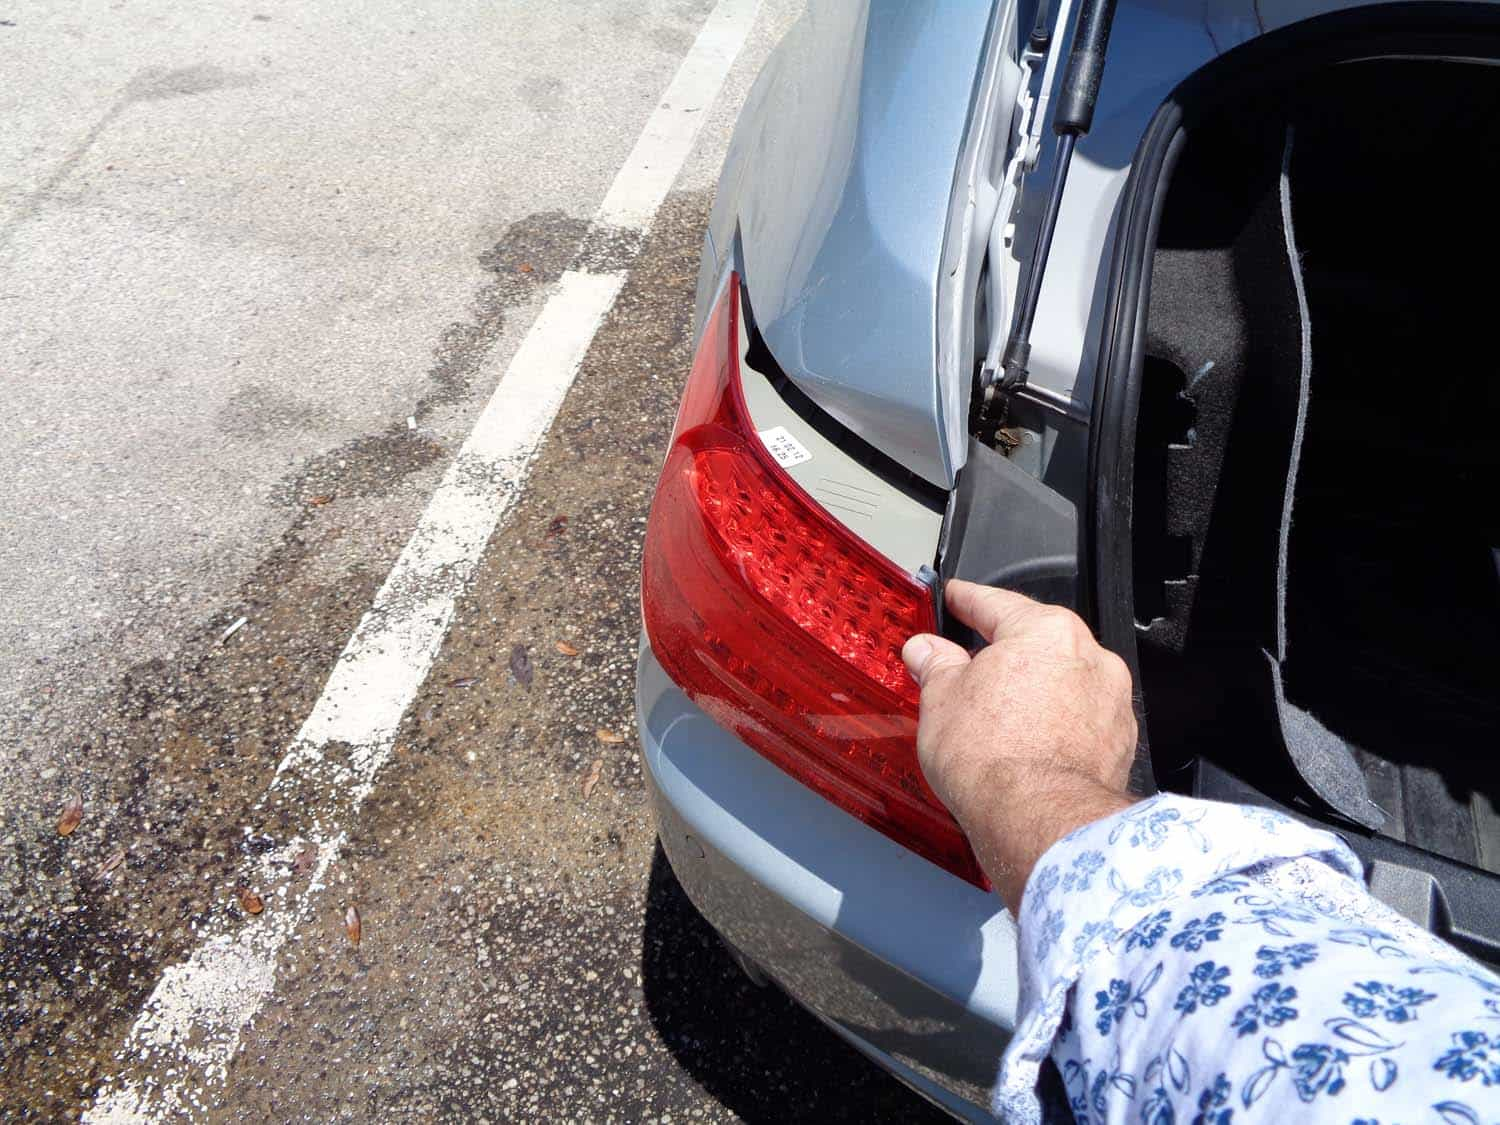 BMW E90 Trunk Leak - remove the tail light from vehicle